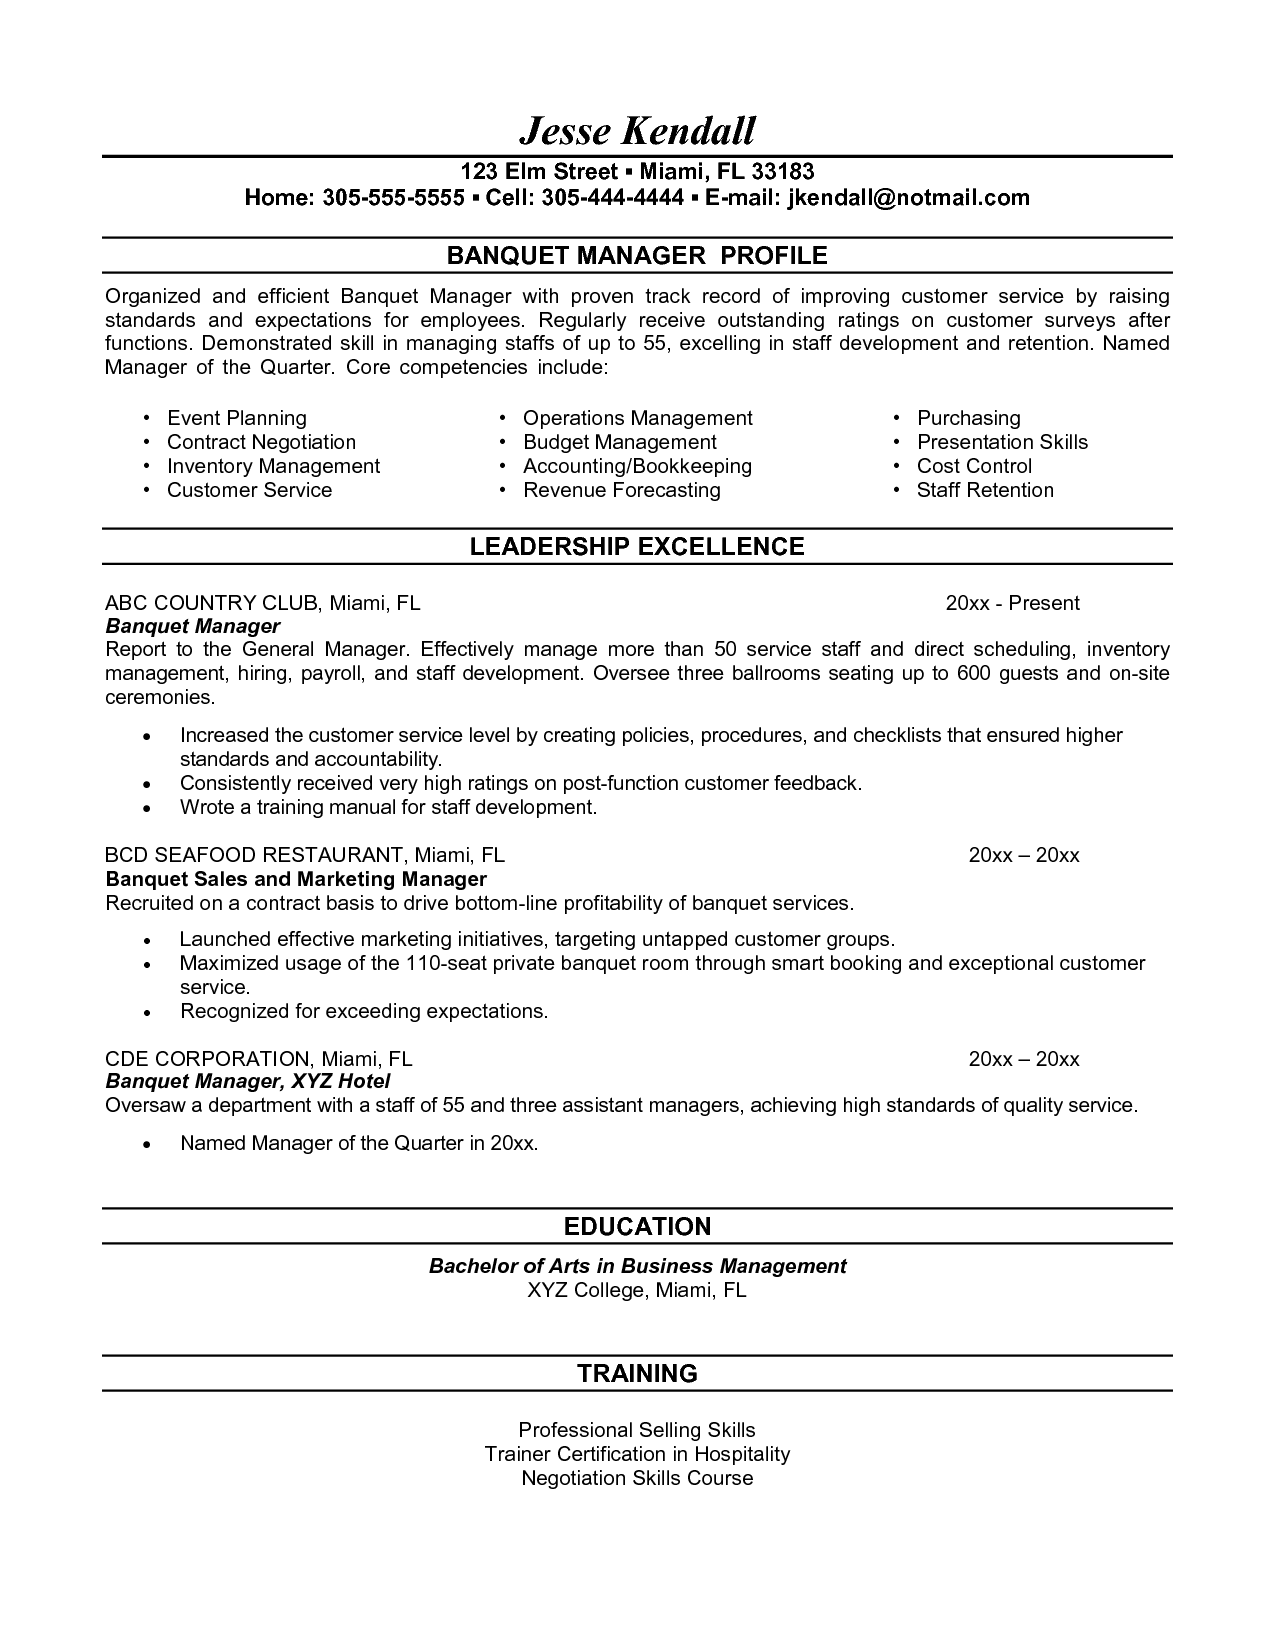 special education teacher resume - Special Education Teacher Resume